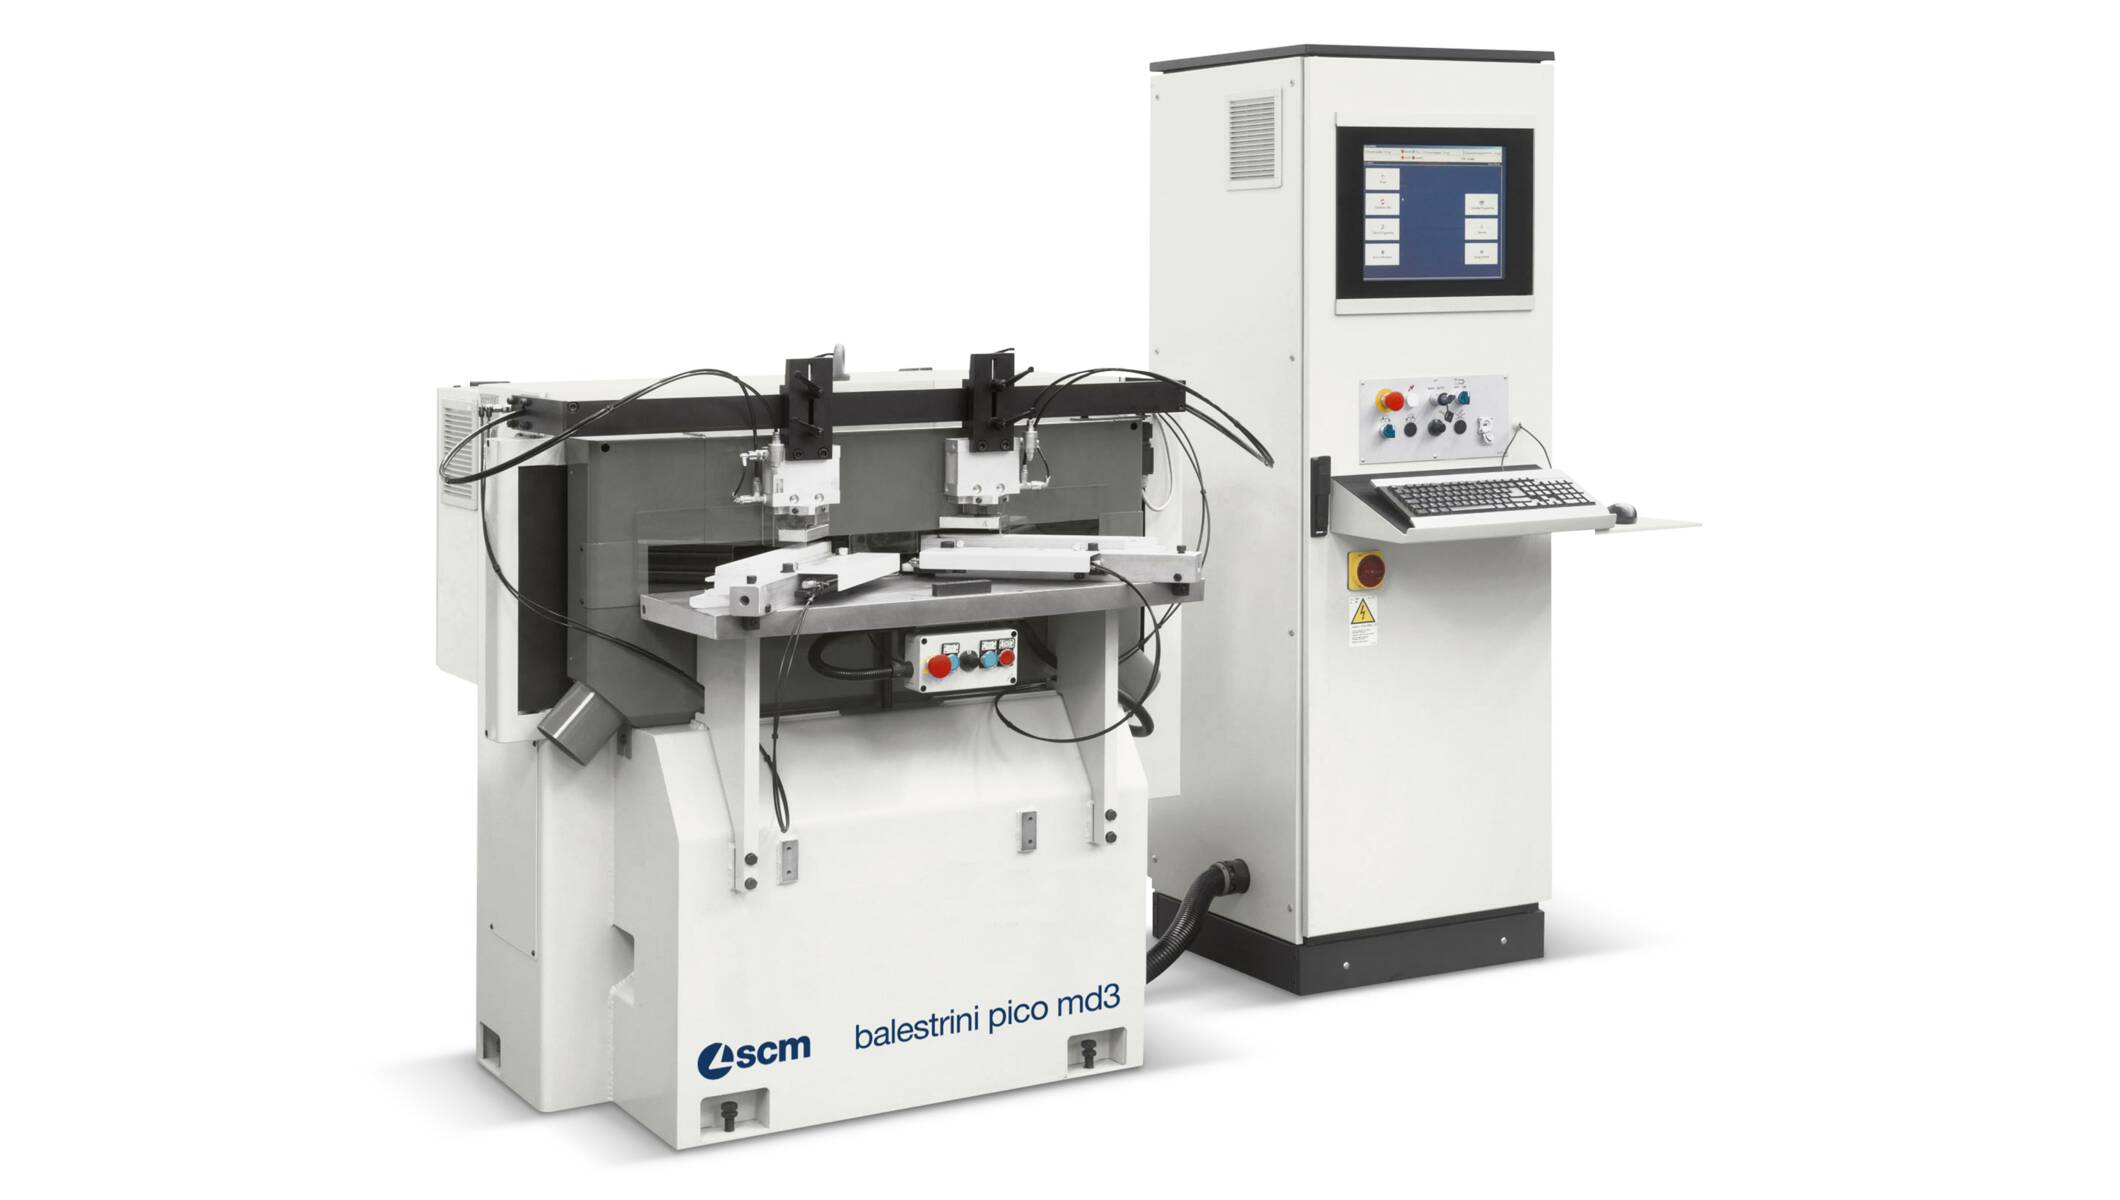 Tenoners, Mortisers, Double sided shapers - Tenoners, Mortisers, Double sided shapers - balestrini pico md3